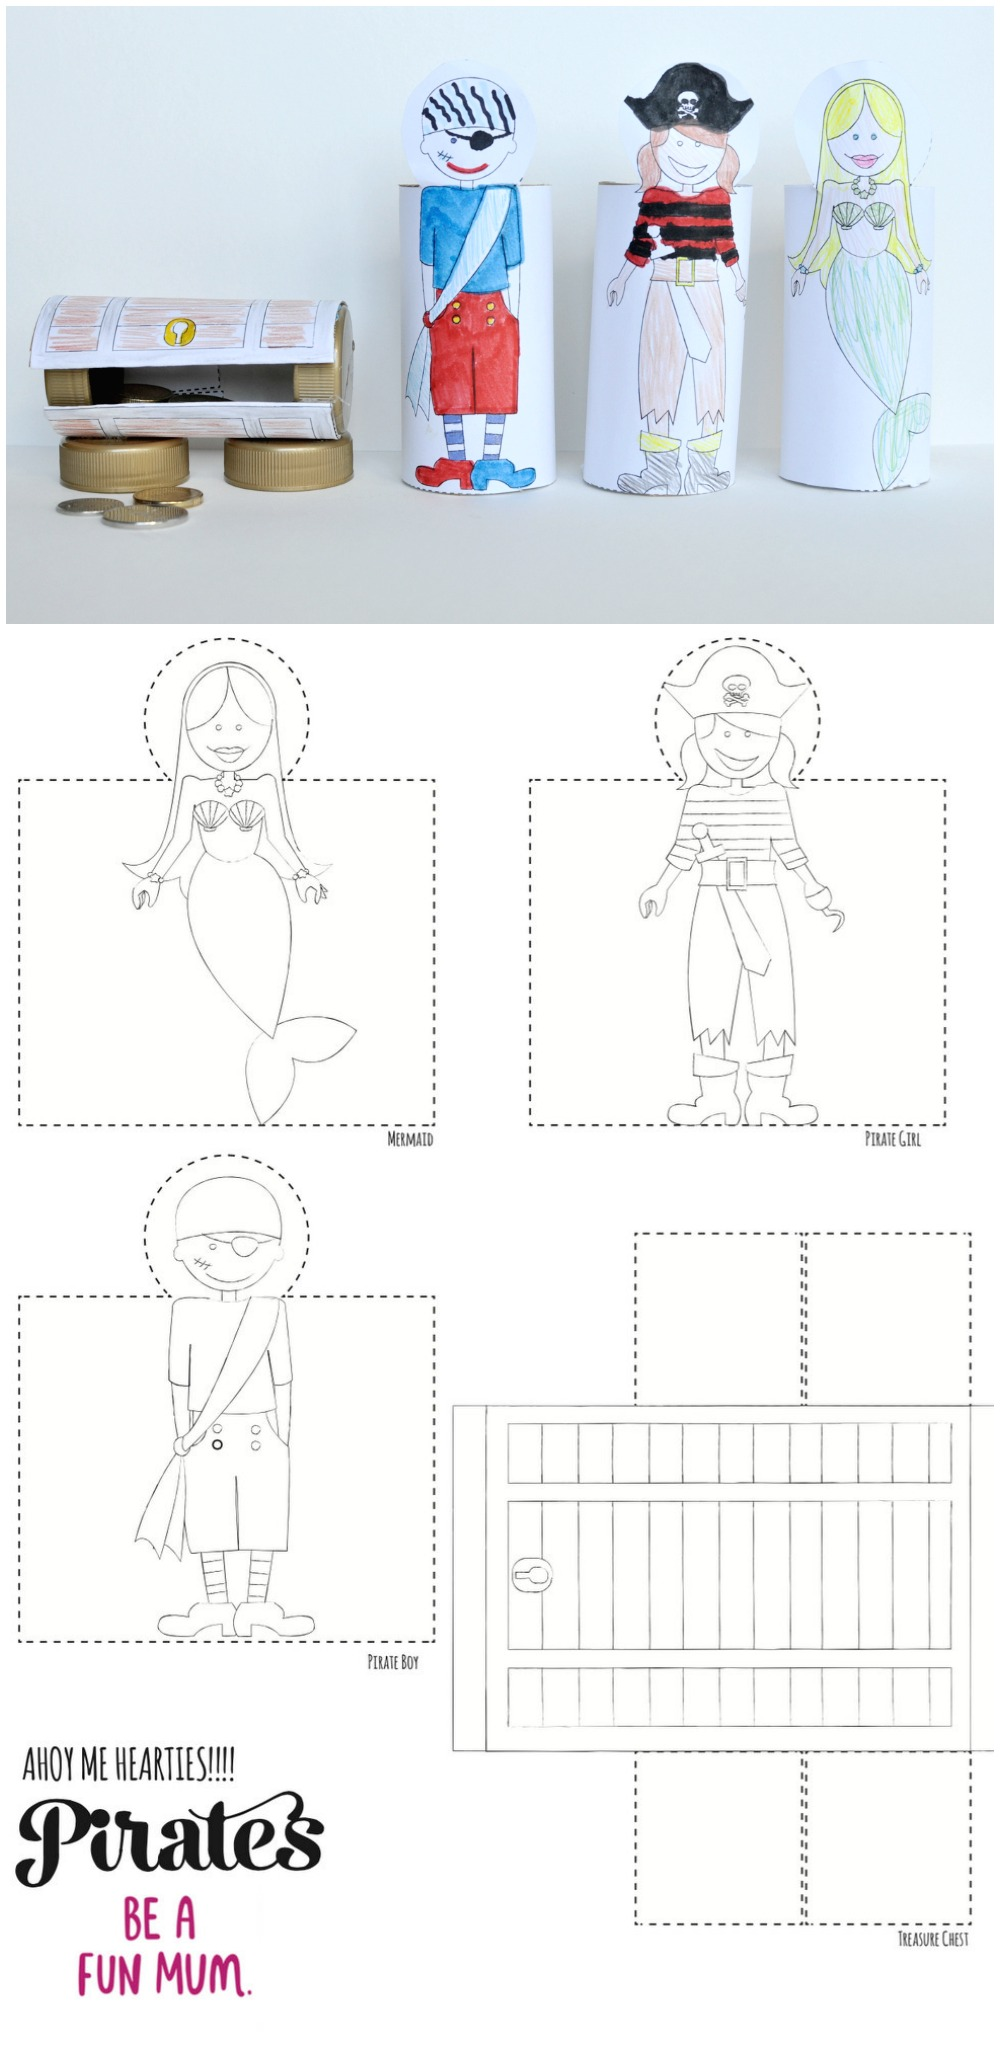 Toilet Roll Pirate Set Printable